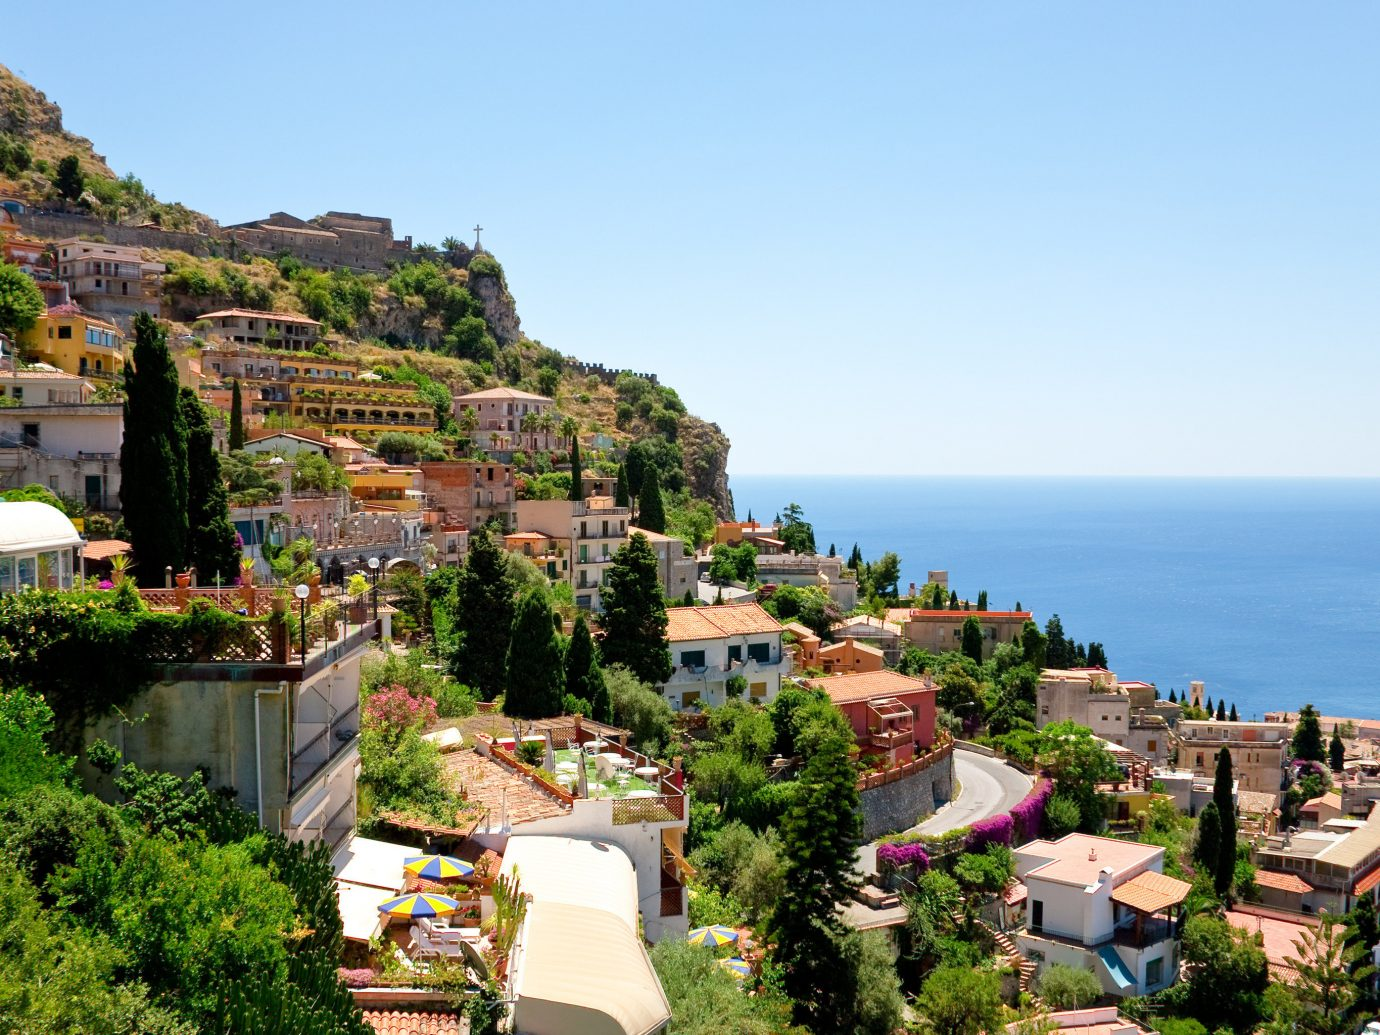 Trip Ideas sky outdoor Town geographical feature Coast Nature vacation Sea neighbourhood human settlement residential area Village tourism City cityscape landscape bay estate overlooking hillside